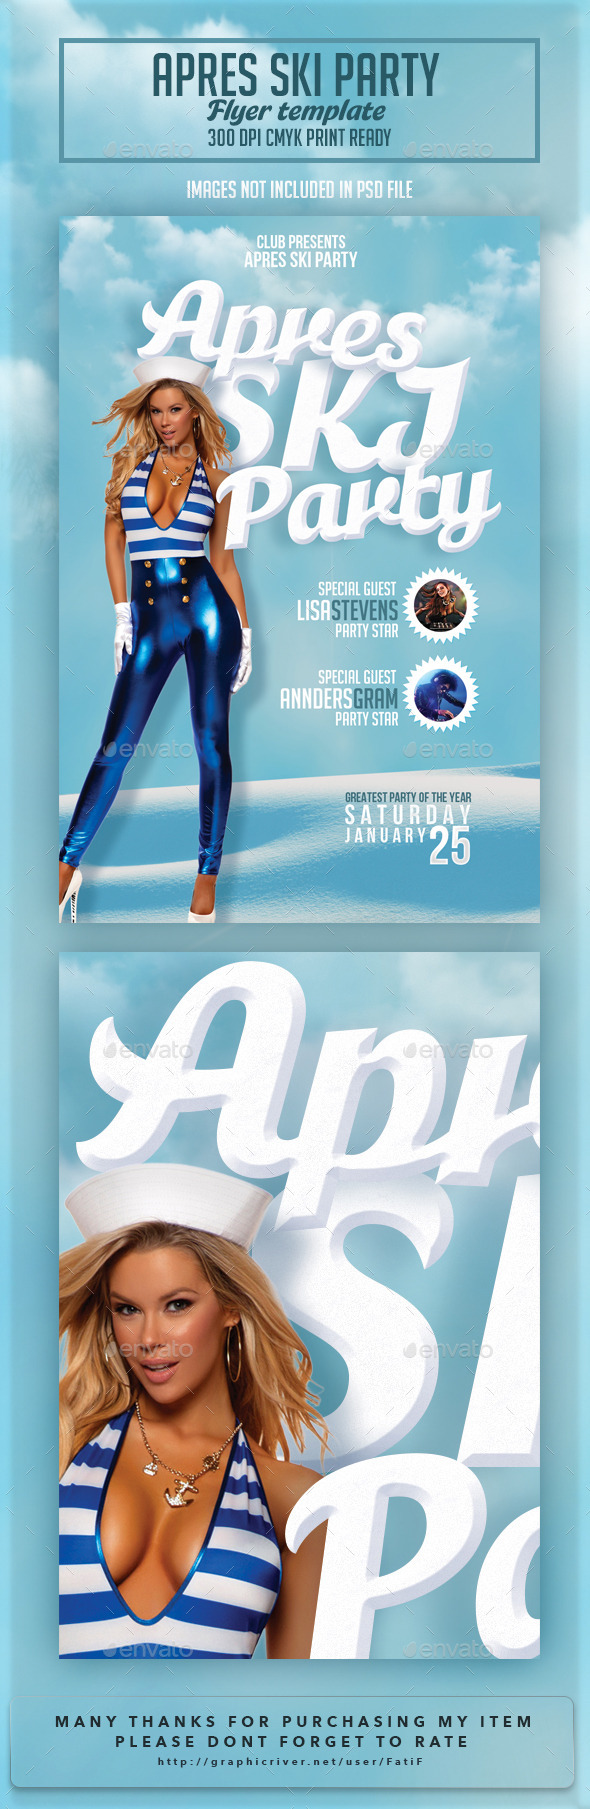 Apres Ski Party Flyer Template - Clubs & Parties Events